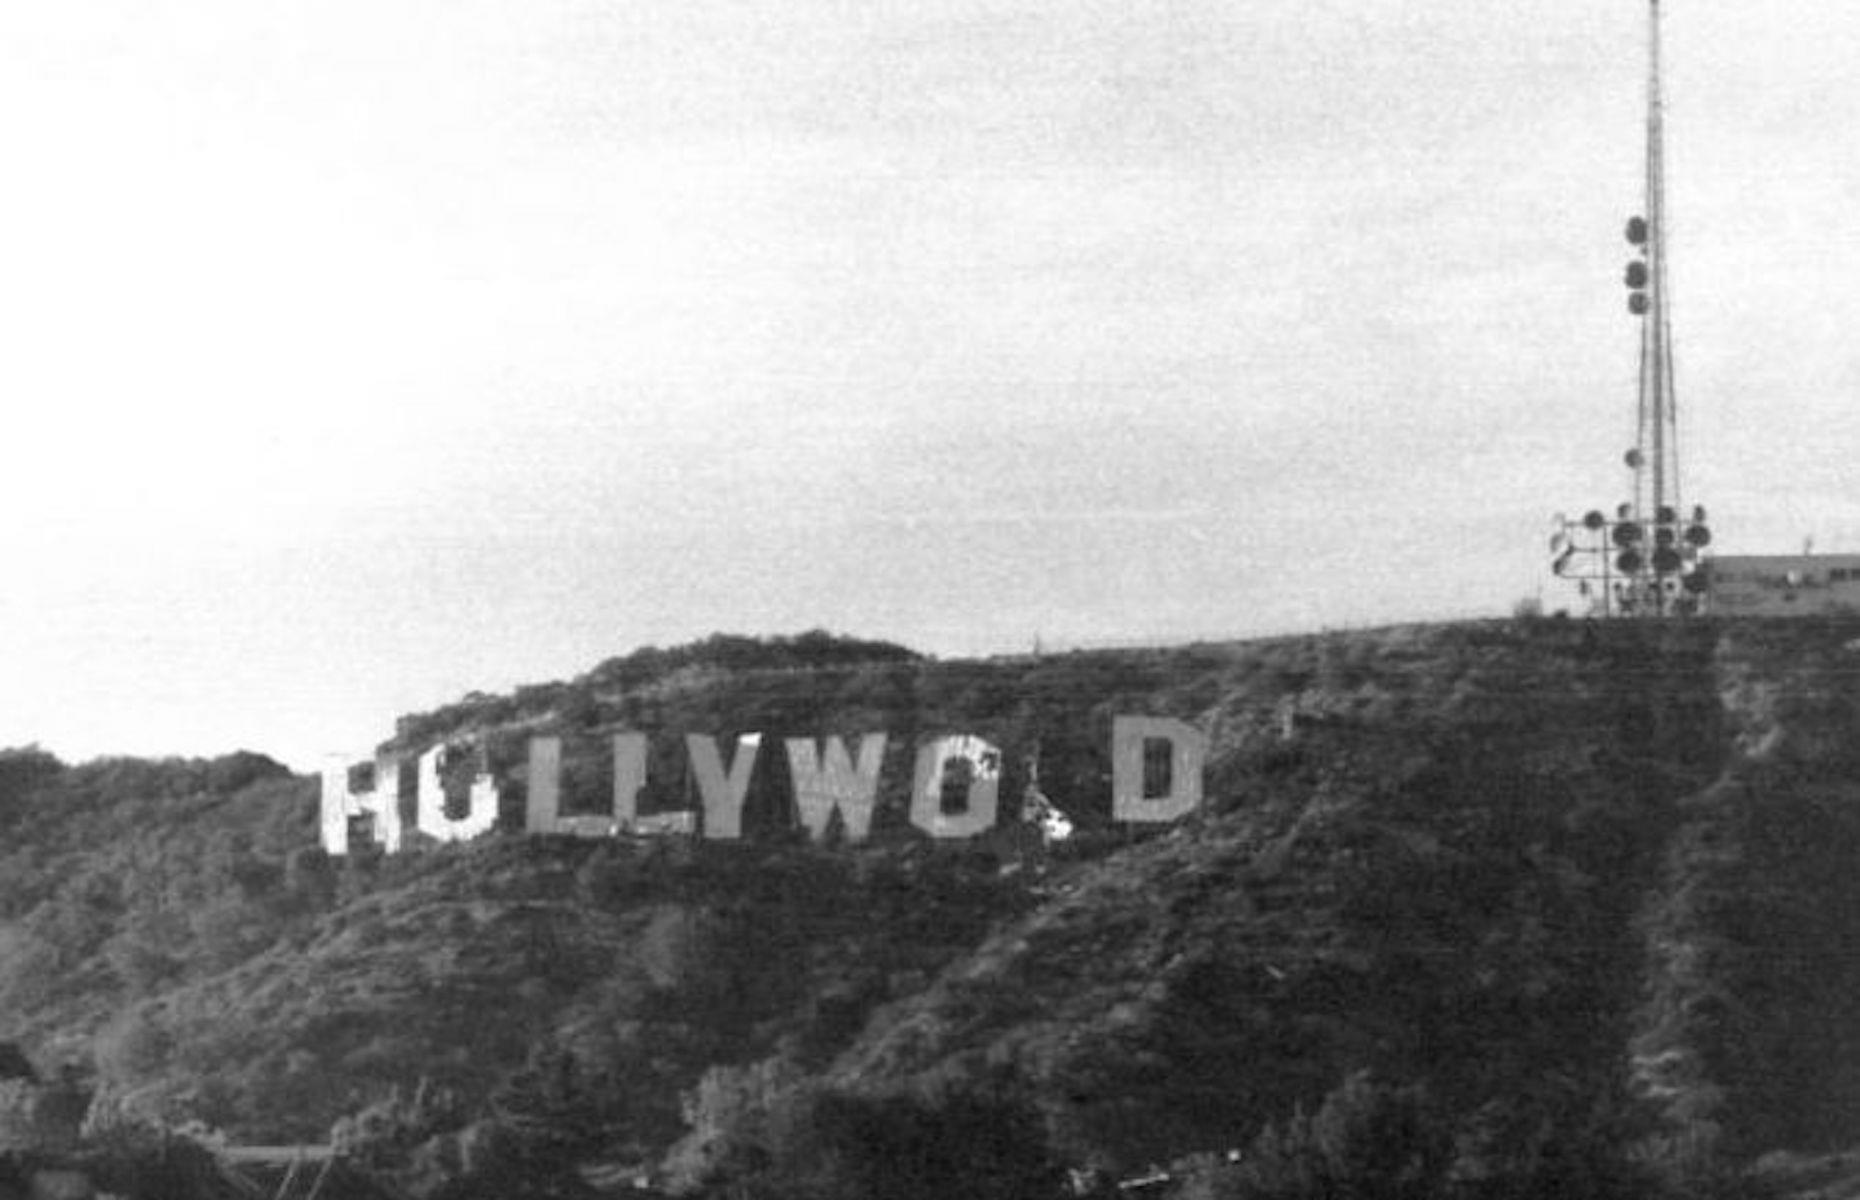 """Slide 15 of 48: Erected in 1923 as a temporary advertisement for a real estate development, the Hollywood sign is now one of the most famous in the world. It originally read Hollywoodland but the """"land"""" was removed when it was restored in 1949. The landmark, which sits on the southern side of Mount Lee in Griffith Park, officially became a historic monument in the 1970s (pictured here) and the deteriorating structure was restored once again in 1978 on the back of a campaign led by Playboy founder Hugh Hefner."""